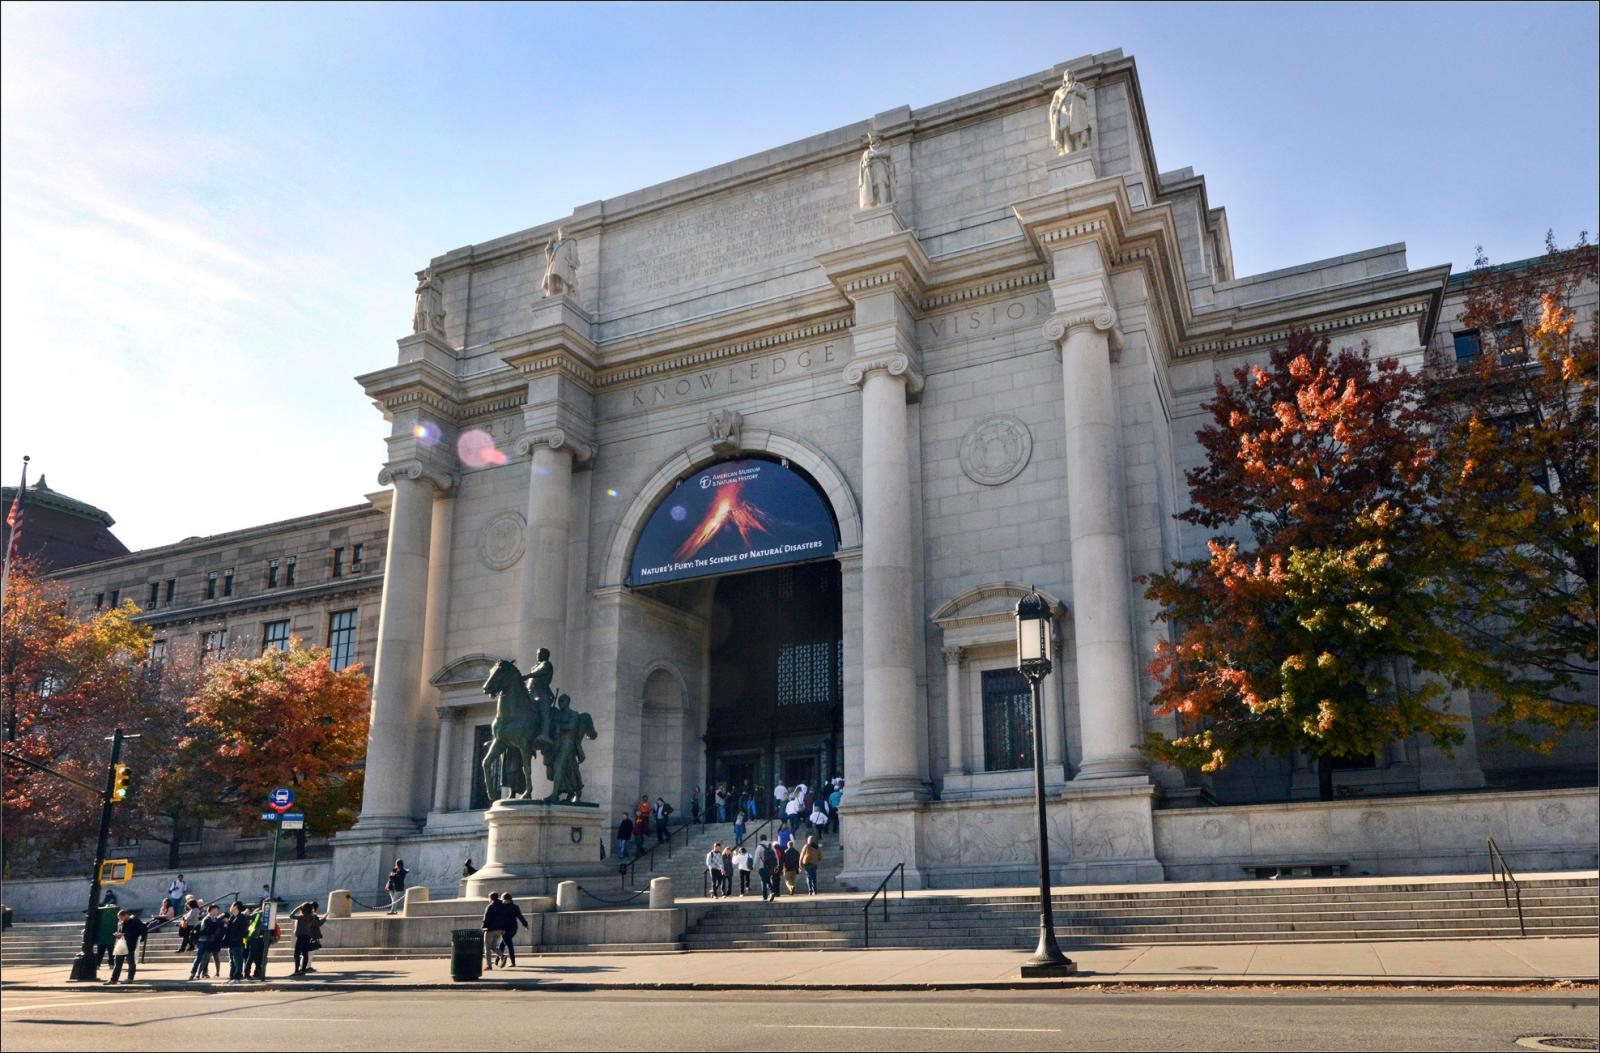 Top 5 Highlights To See The American Museum Of Natural